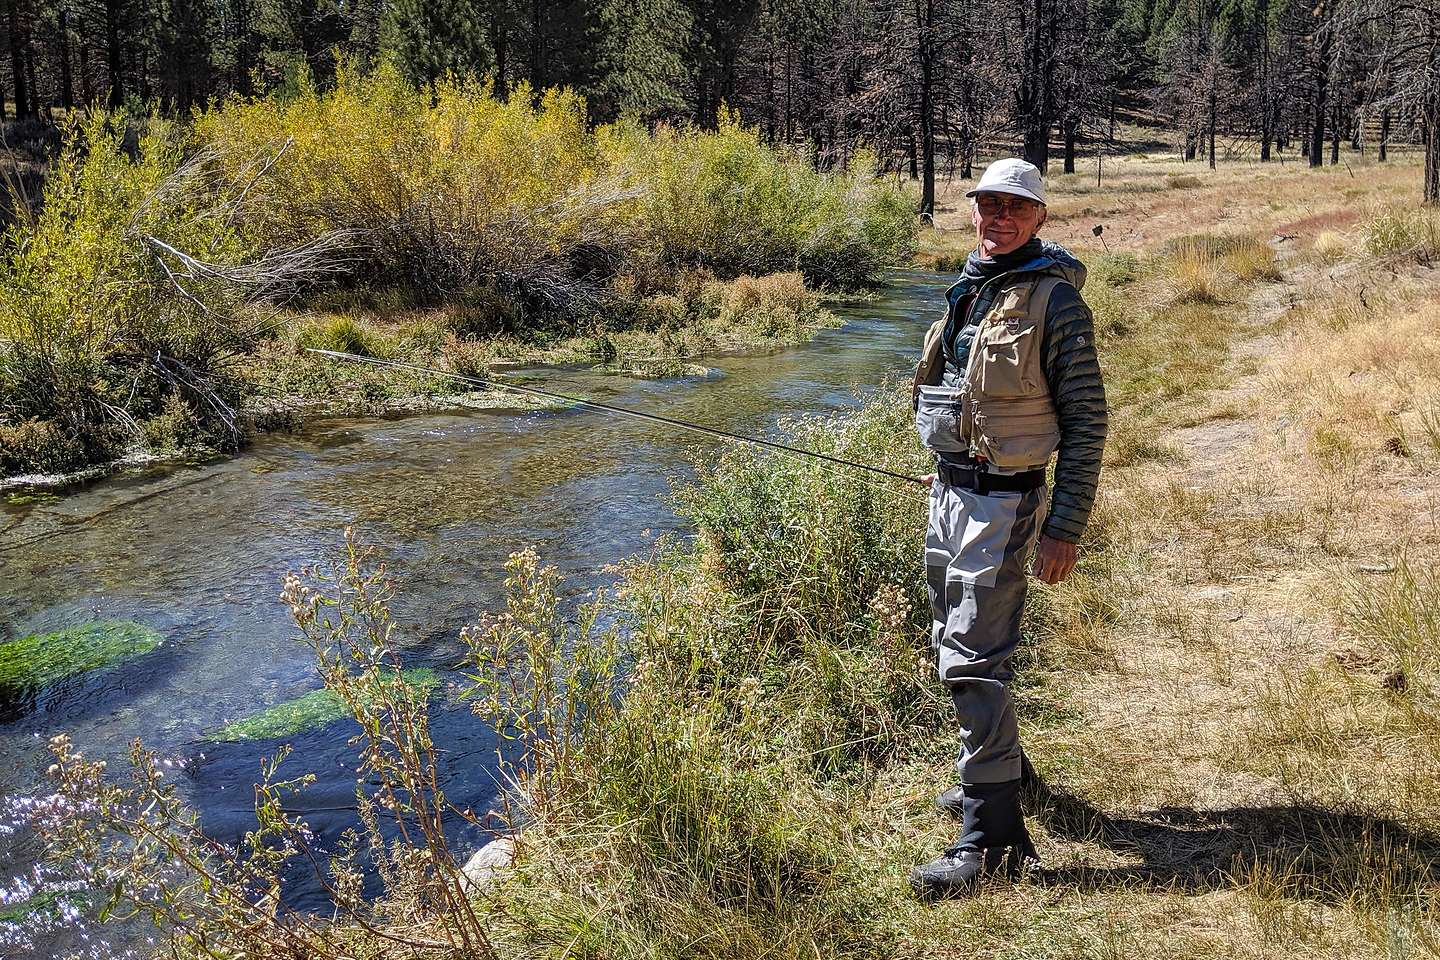 Herb fishing the Owens River